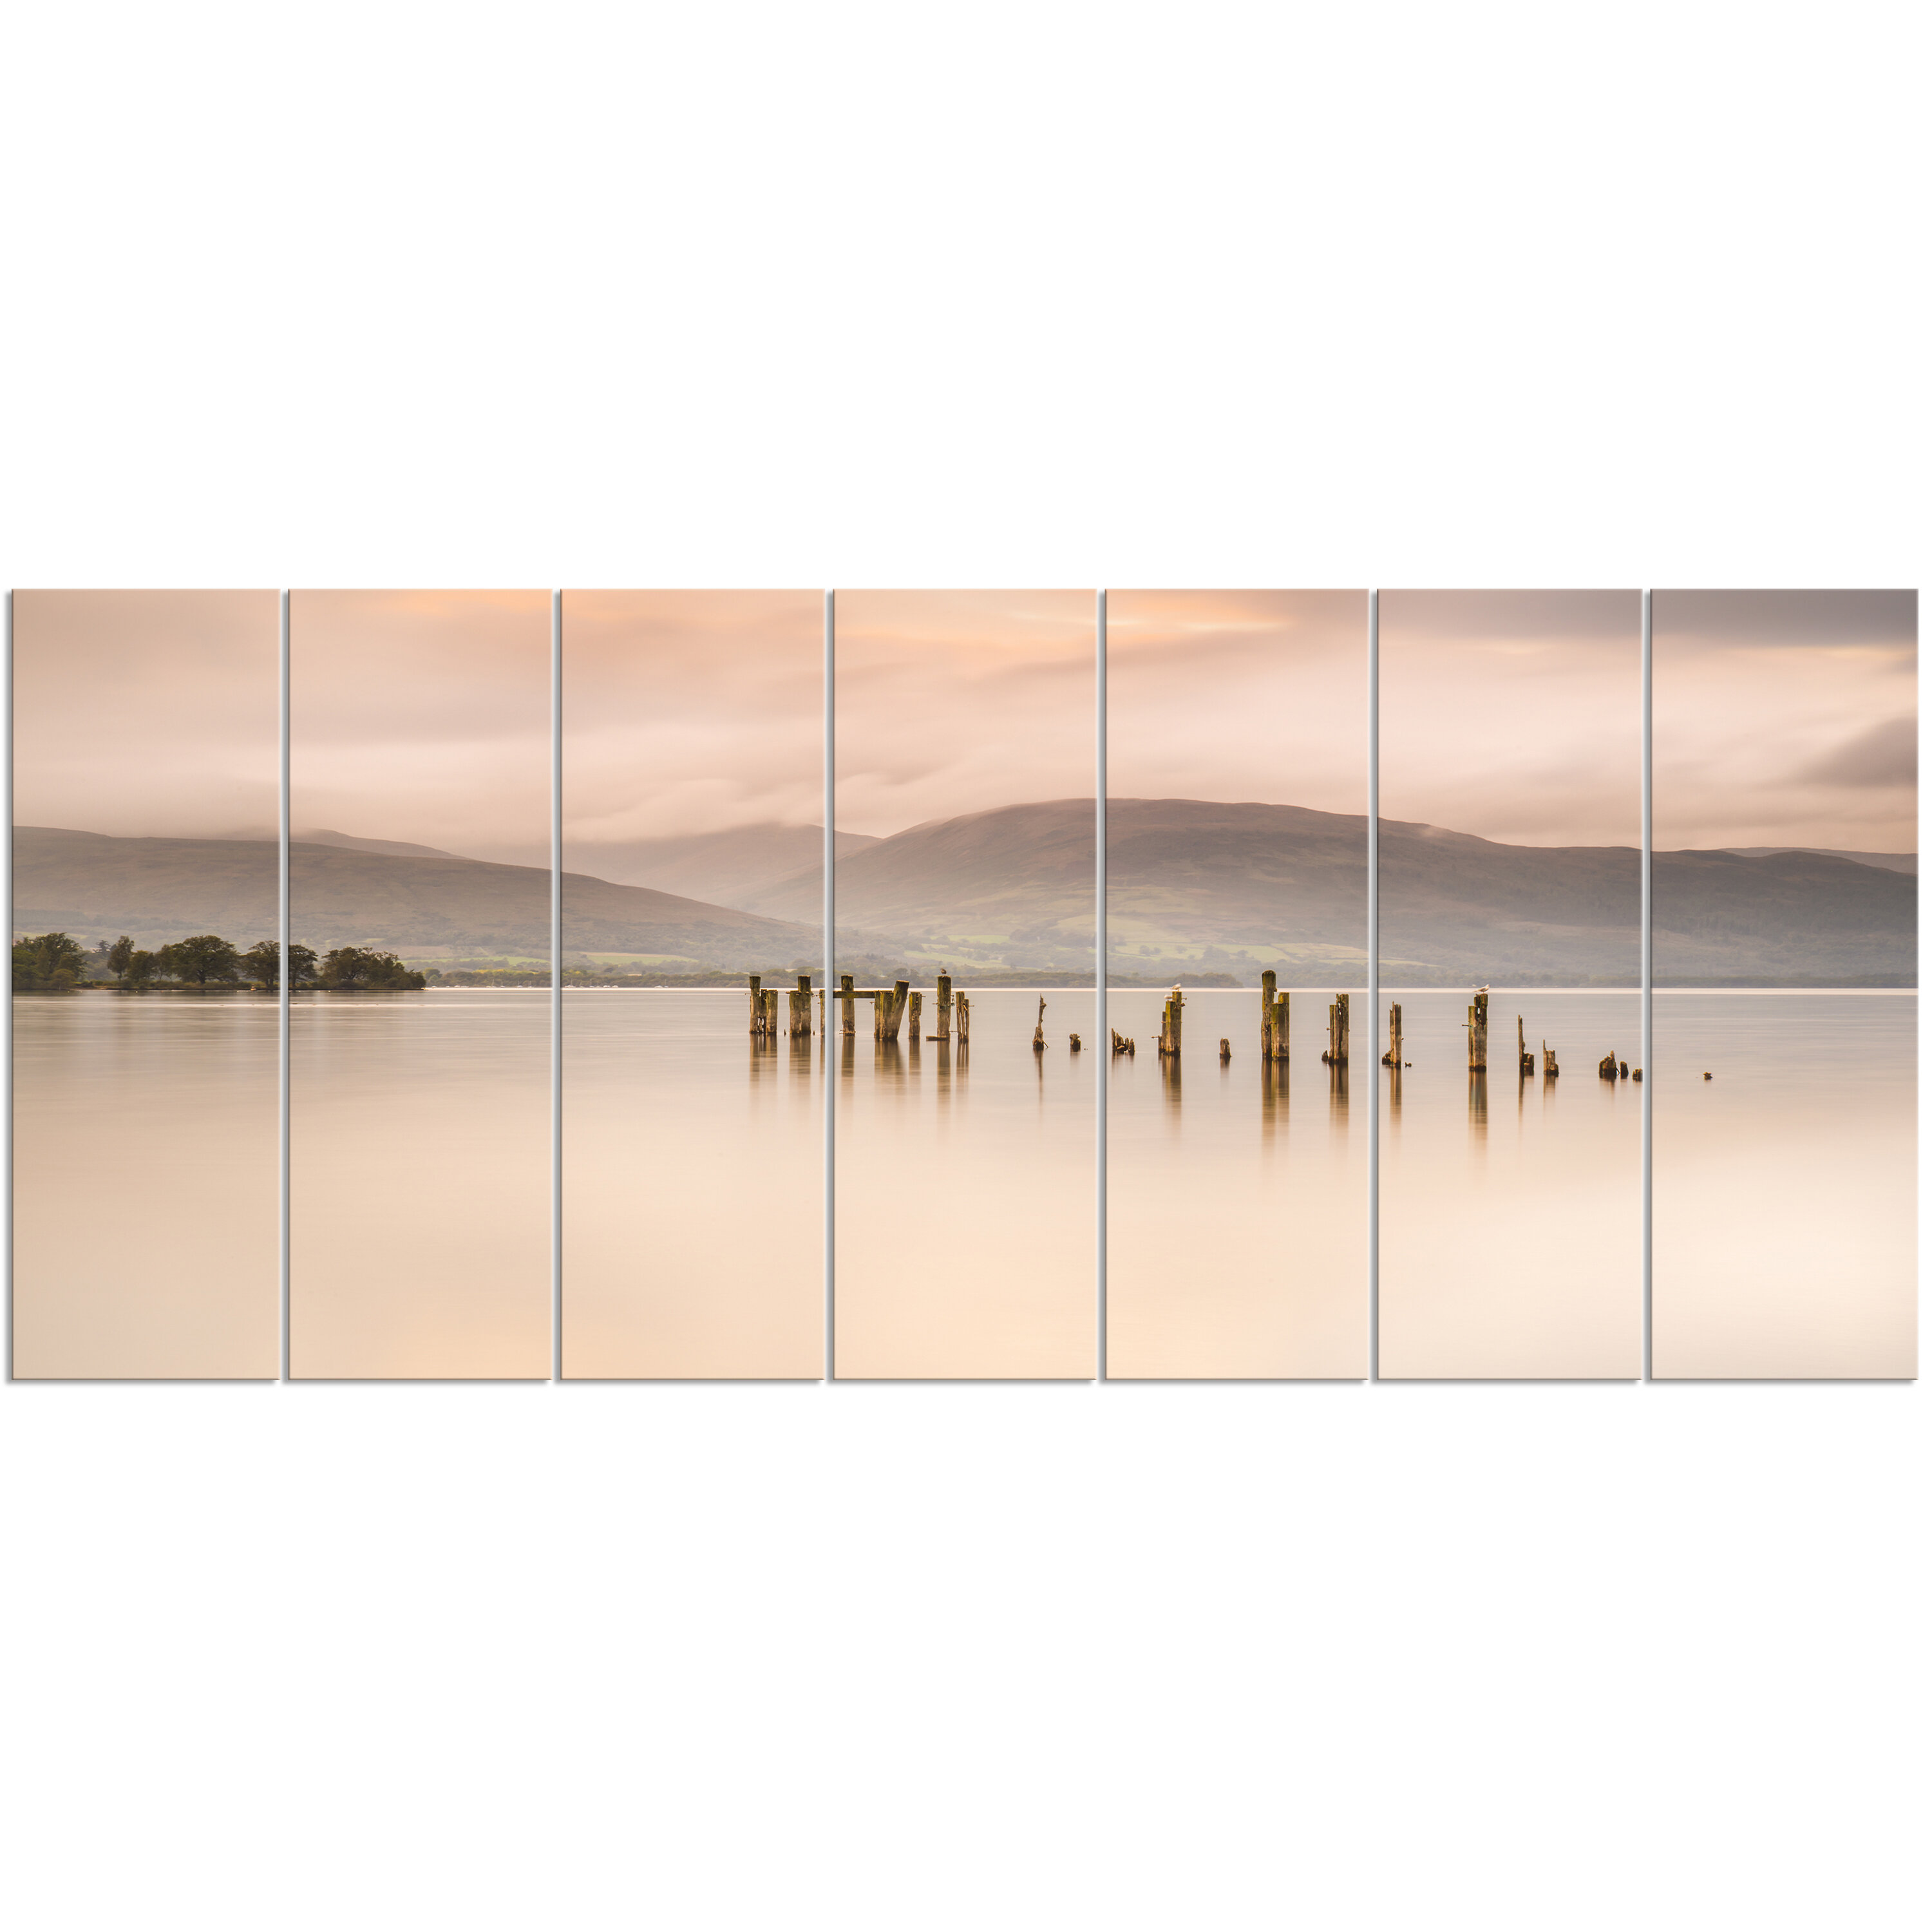 Designart Loch Lomond Jetty And Mountains 7 Piece Photographic Print On Wrapped Canvas Set Wayfair